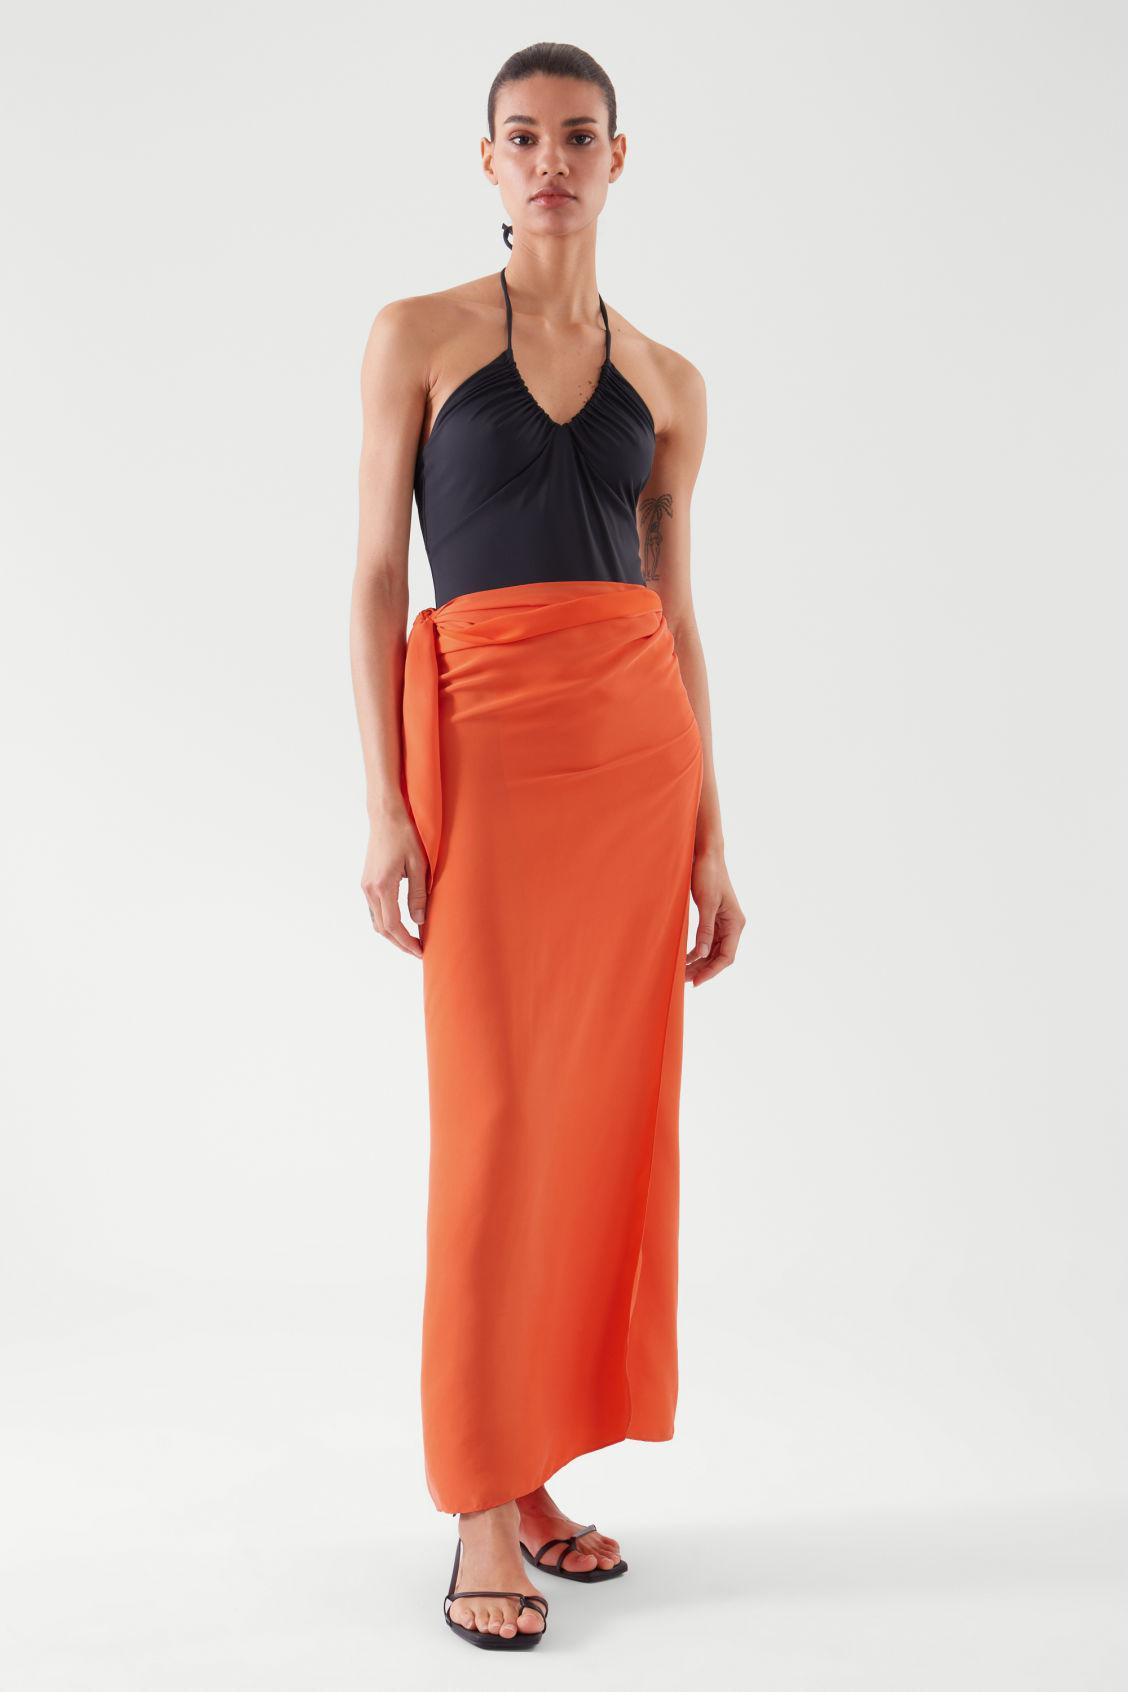 KNOTTED SARONG